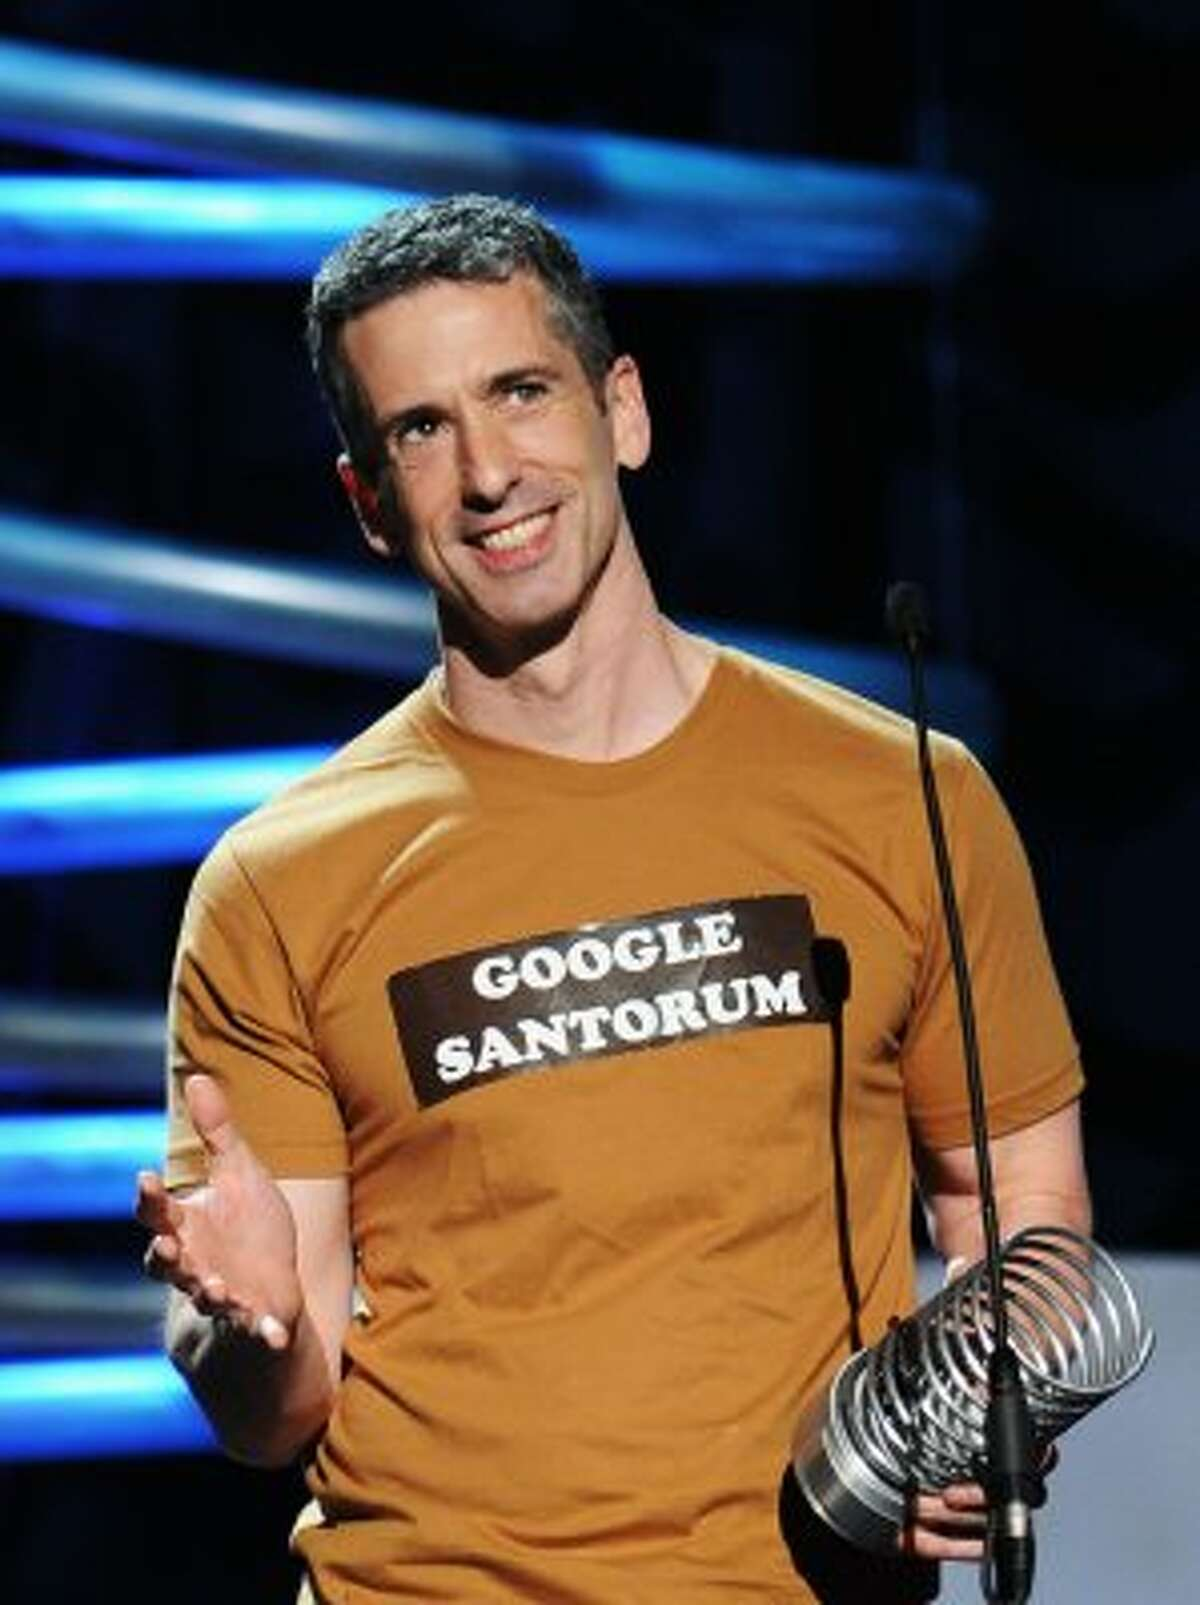 Dan Savage writes a sex advice column for The Stranger, and has mercilessly baited anti-gay politicians, from religious-right presidential candidate Gary Bauer more than a decade ago to ex-Sen. Rick Santorum.